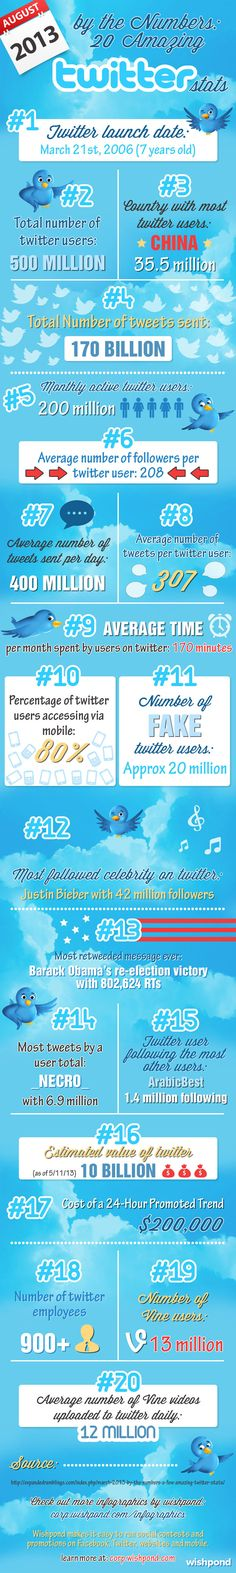 Twitter By The Numbers: 20 Amazing Twitter Stats August 2013(Infographic) - Business 2 Community